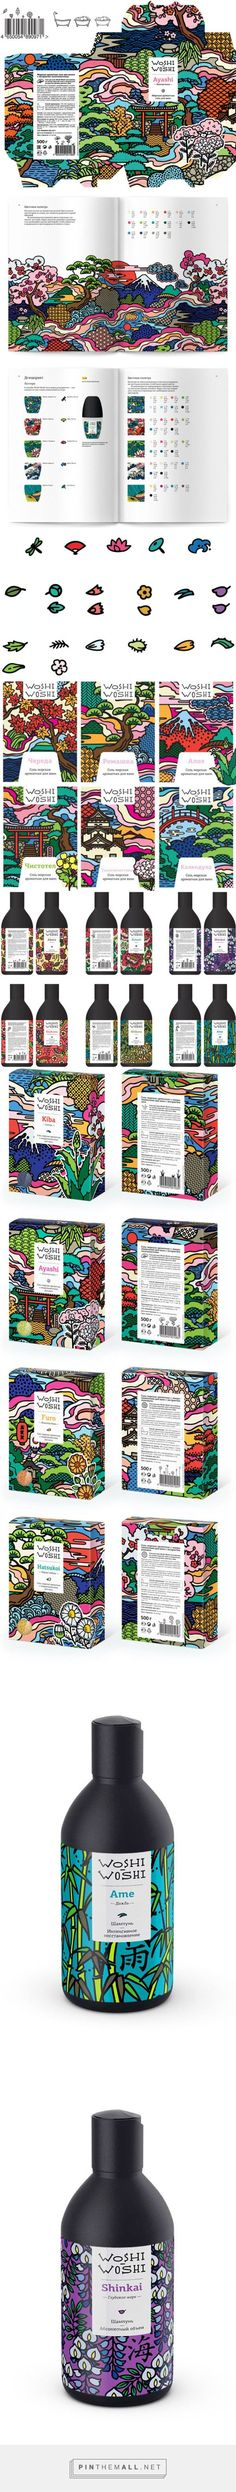 "Art Lebedev Studio - Woshi Woshi curated by Packaging Diva PD. Awesome expanded ""Wooshi Wooshi"" a most popular team pin. Web Design, Book Design, Layout Design, Design Art, Print Design, Nail Design, Corporate Design, Brand Packaging, Packaging Design"